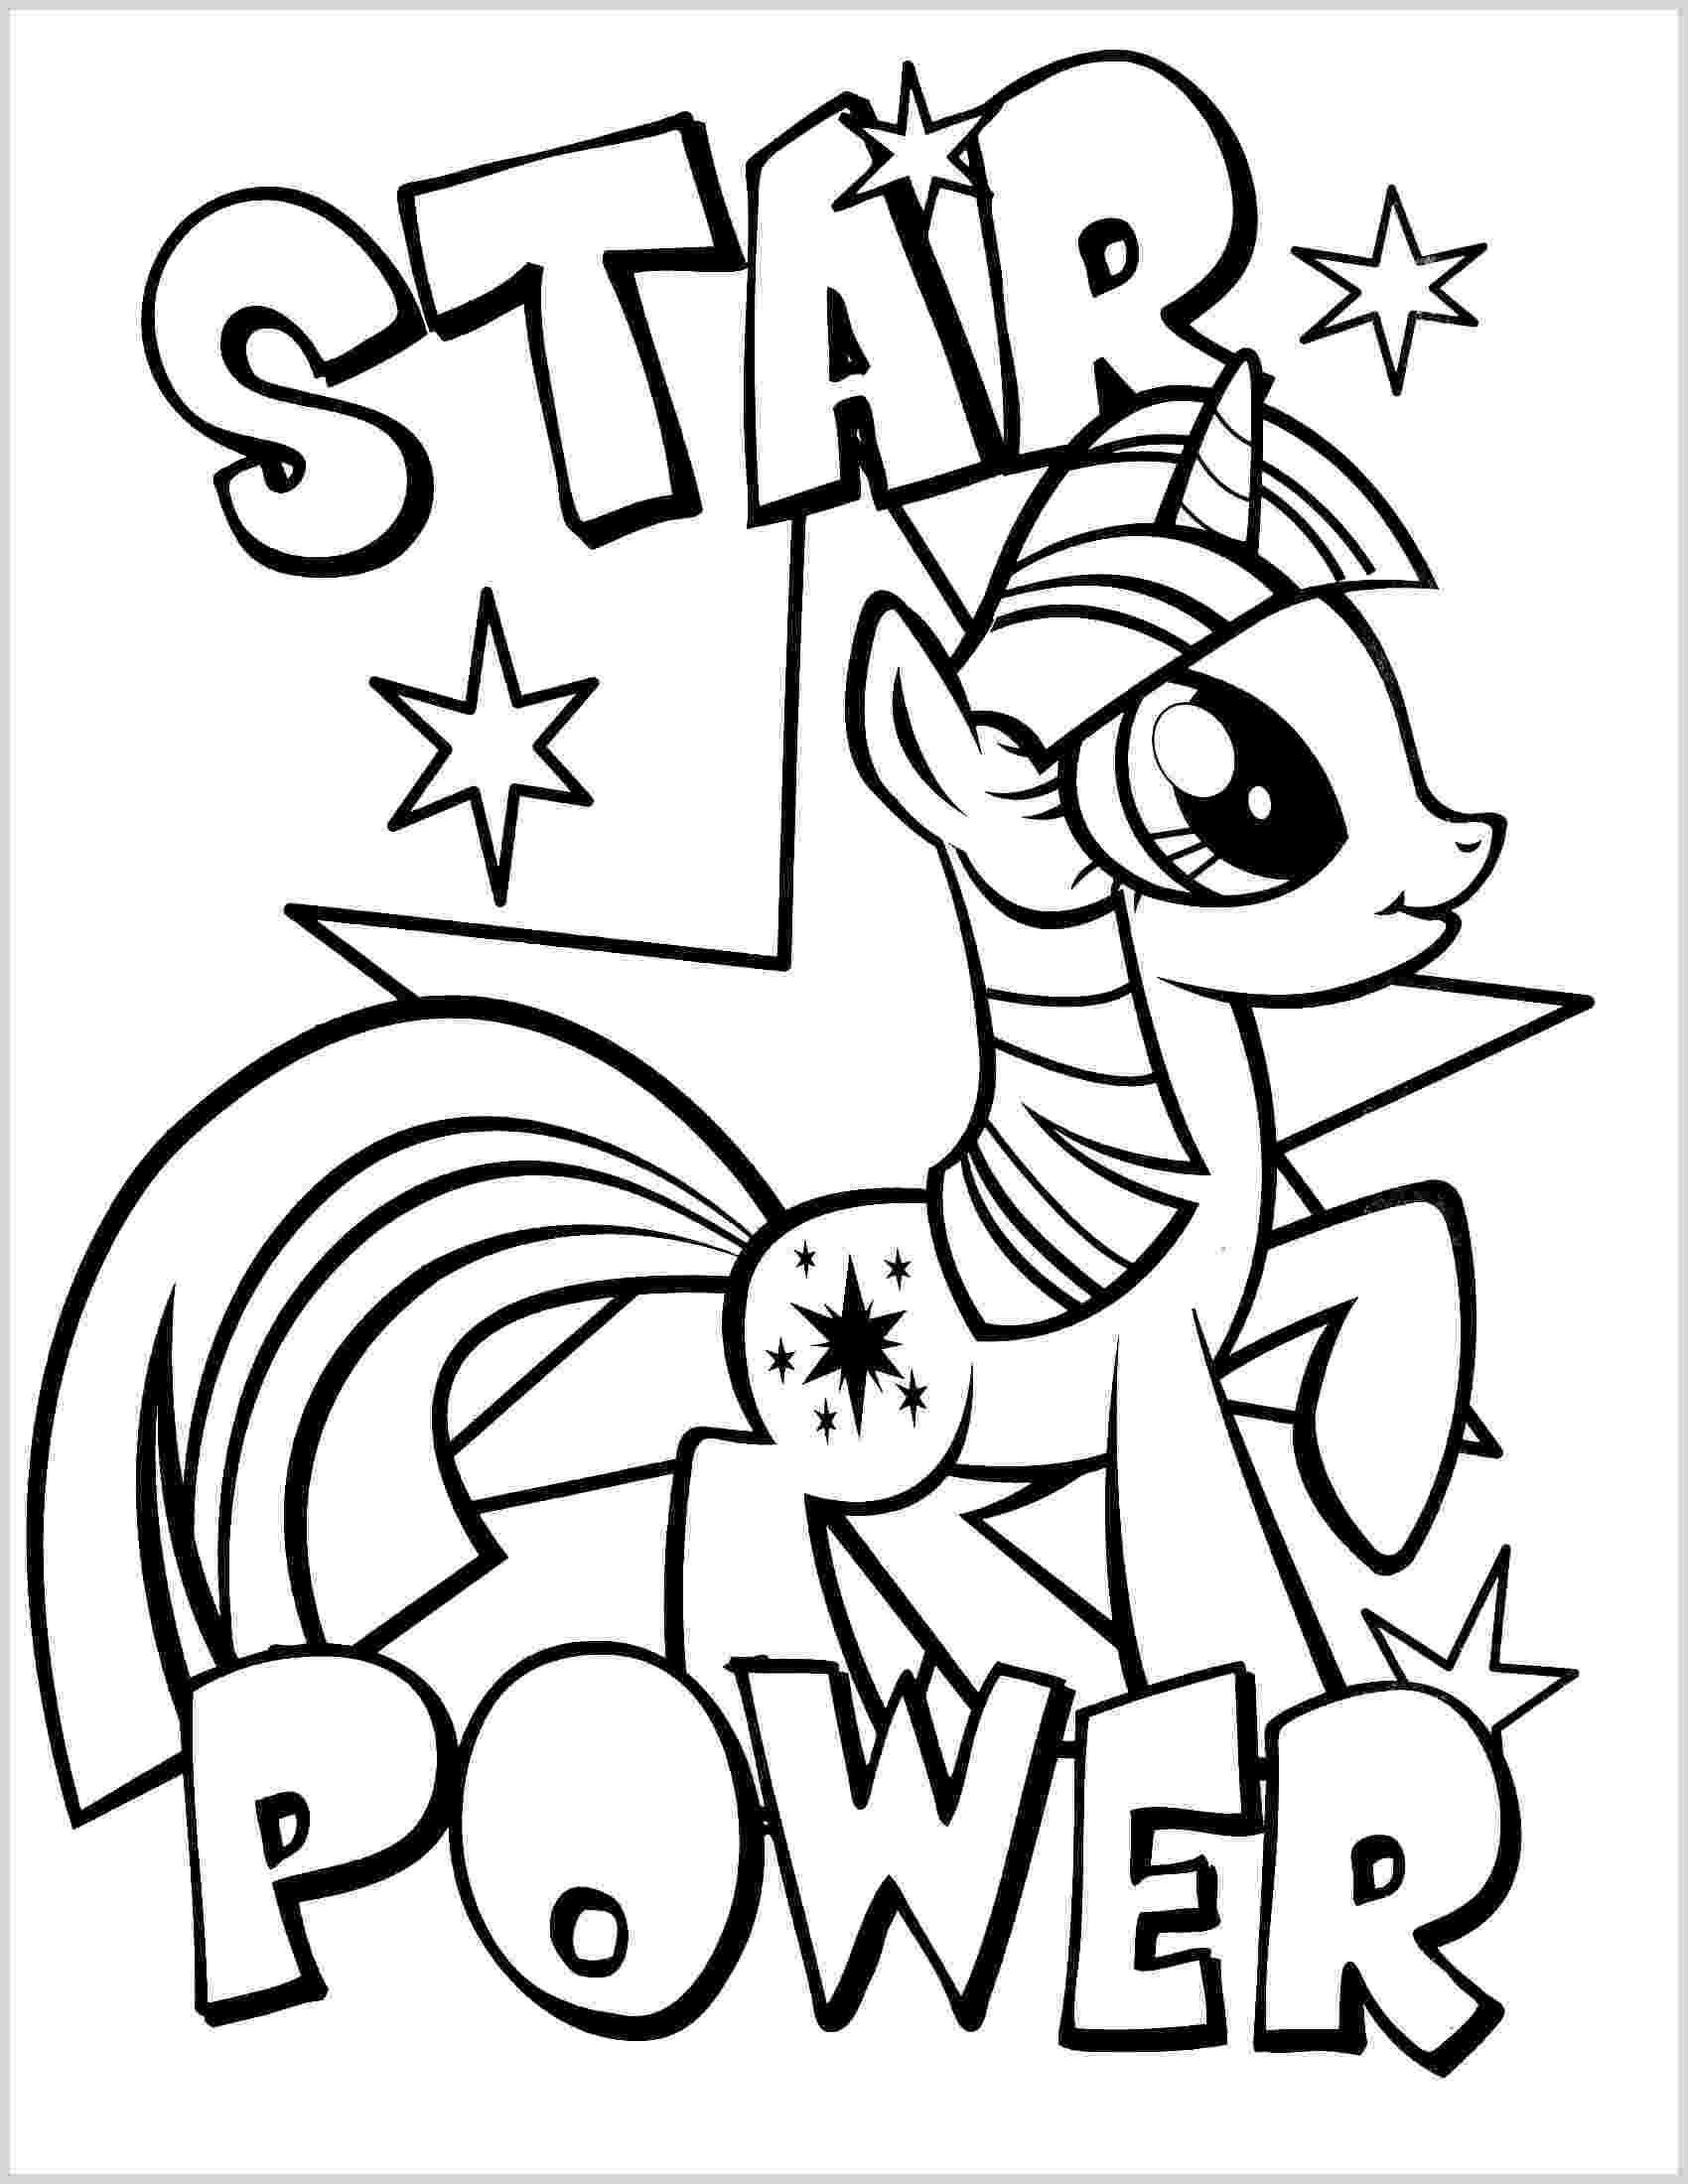 my little pony coloring images spike my little pony coloring page at getcoloringscom little images my coloring pony